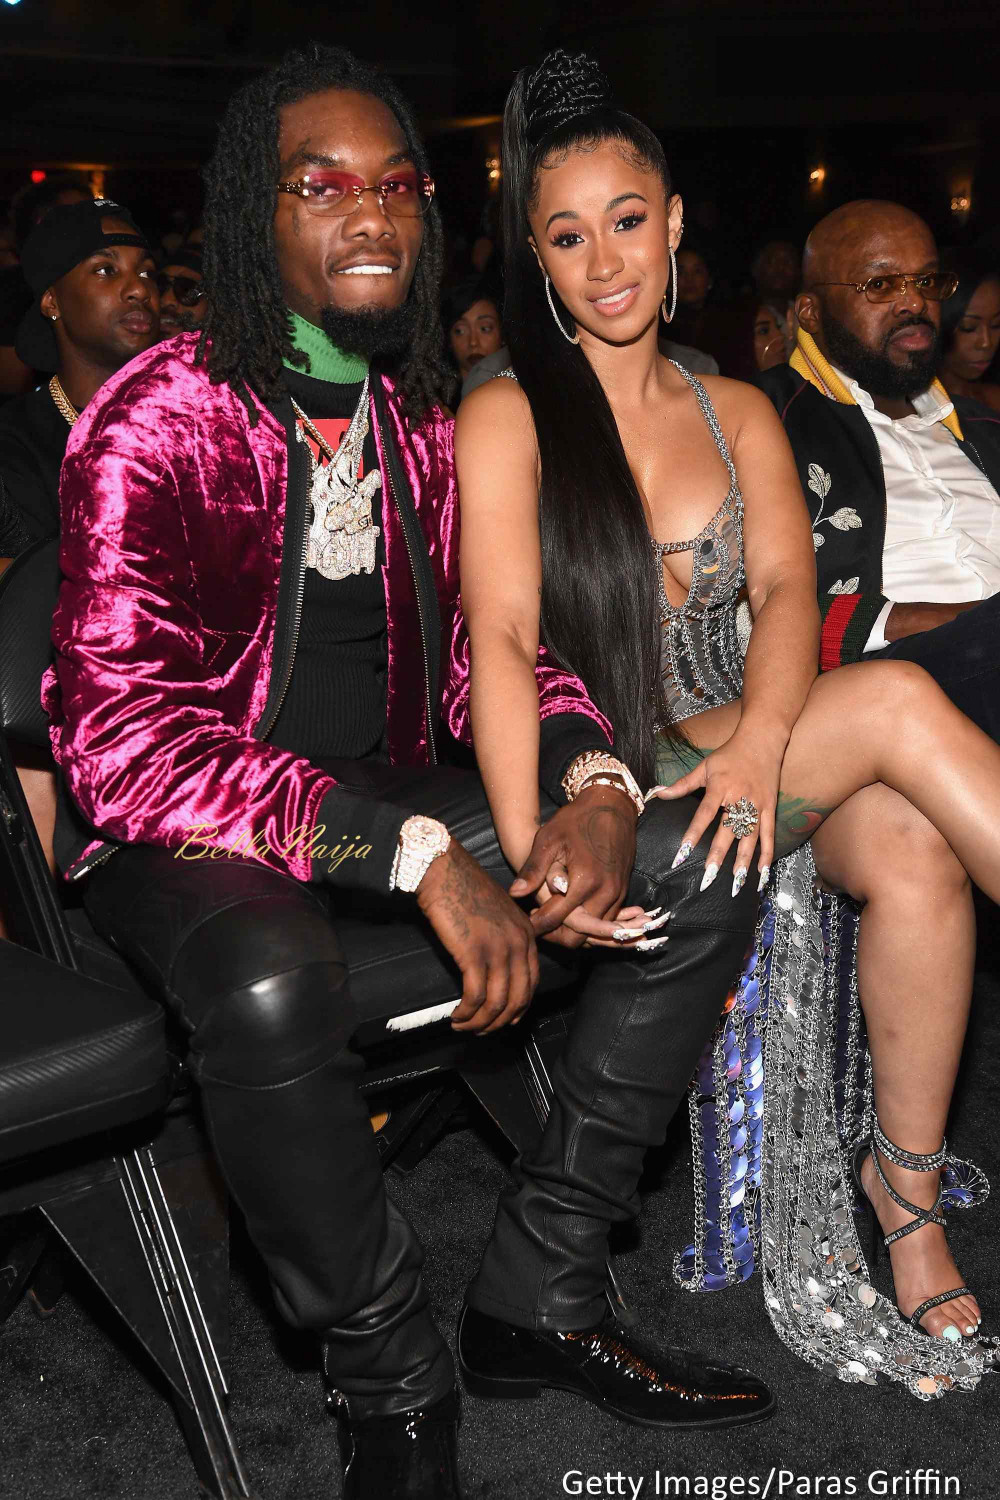 DJ Khaled, Cardi B, Migos and all the stars turn up for BET #HipHopAwards 2017